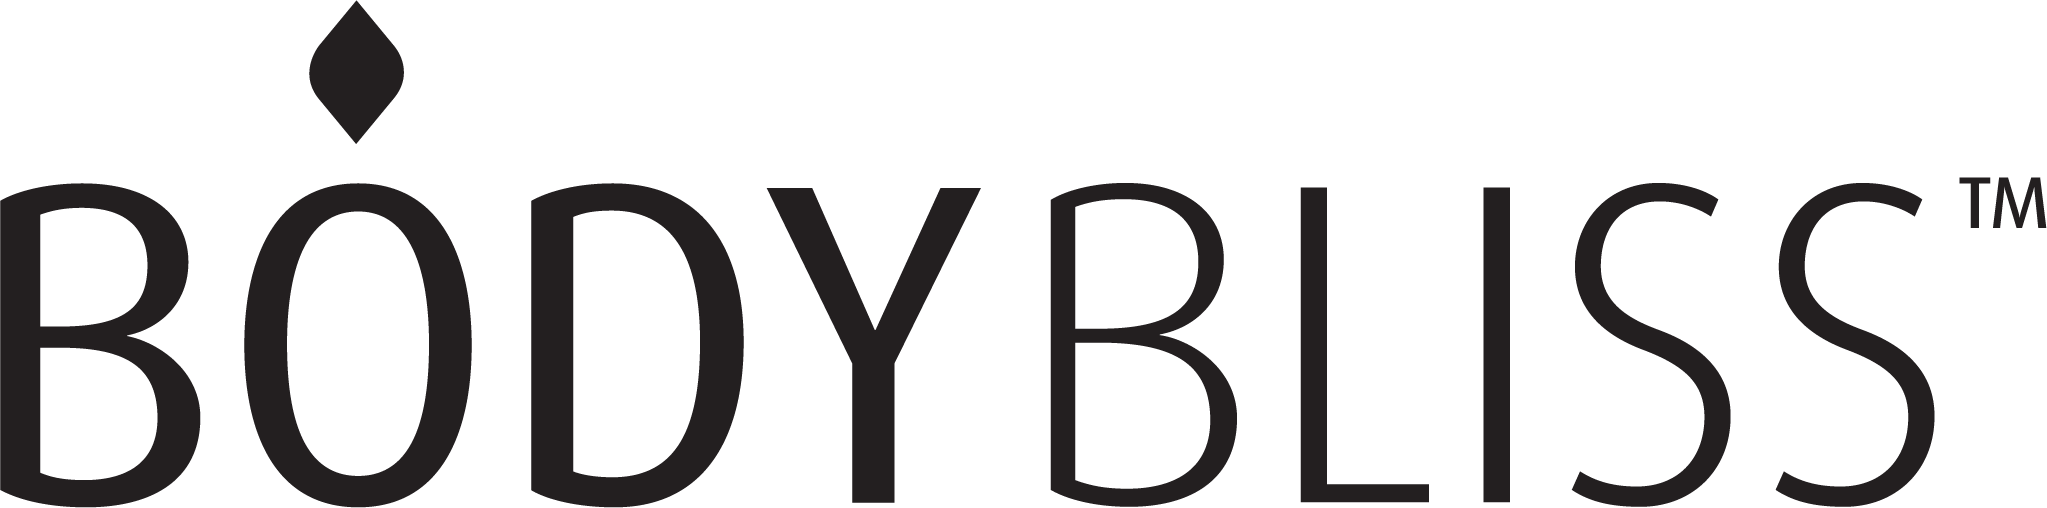 bodybliss-logo-black.png